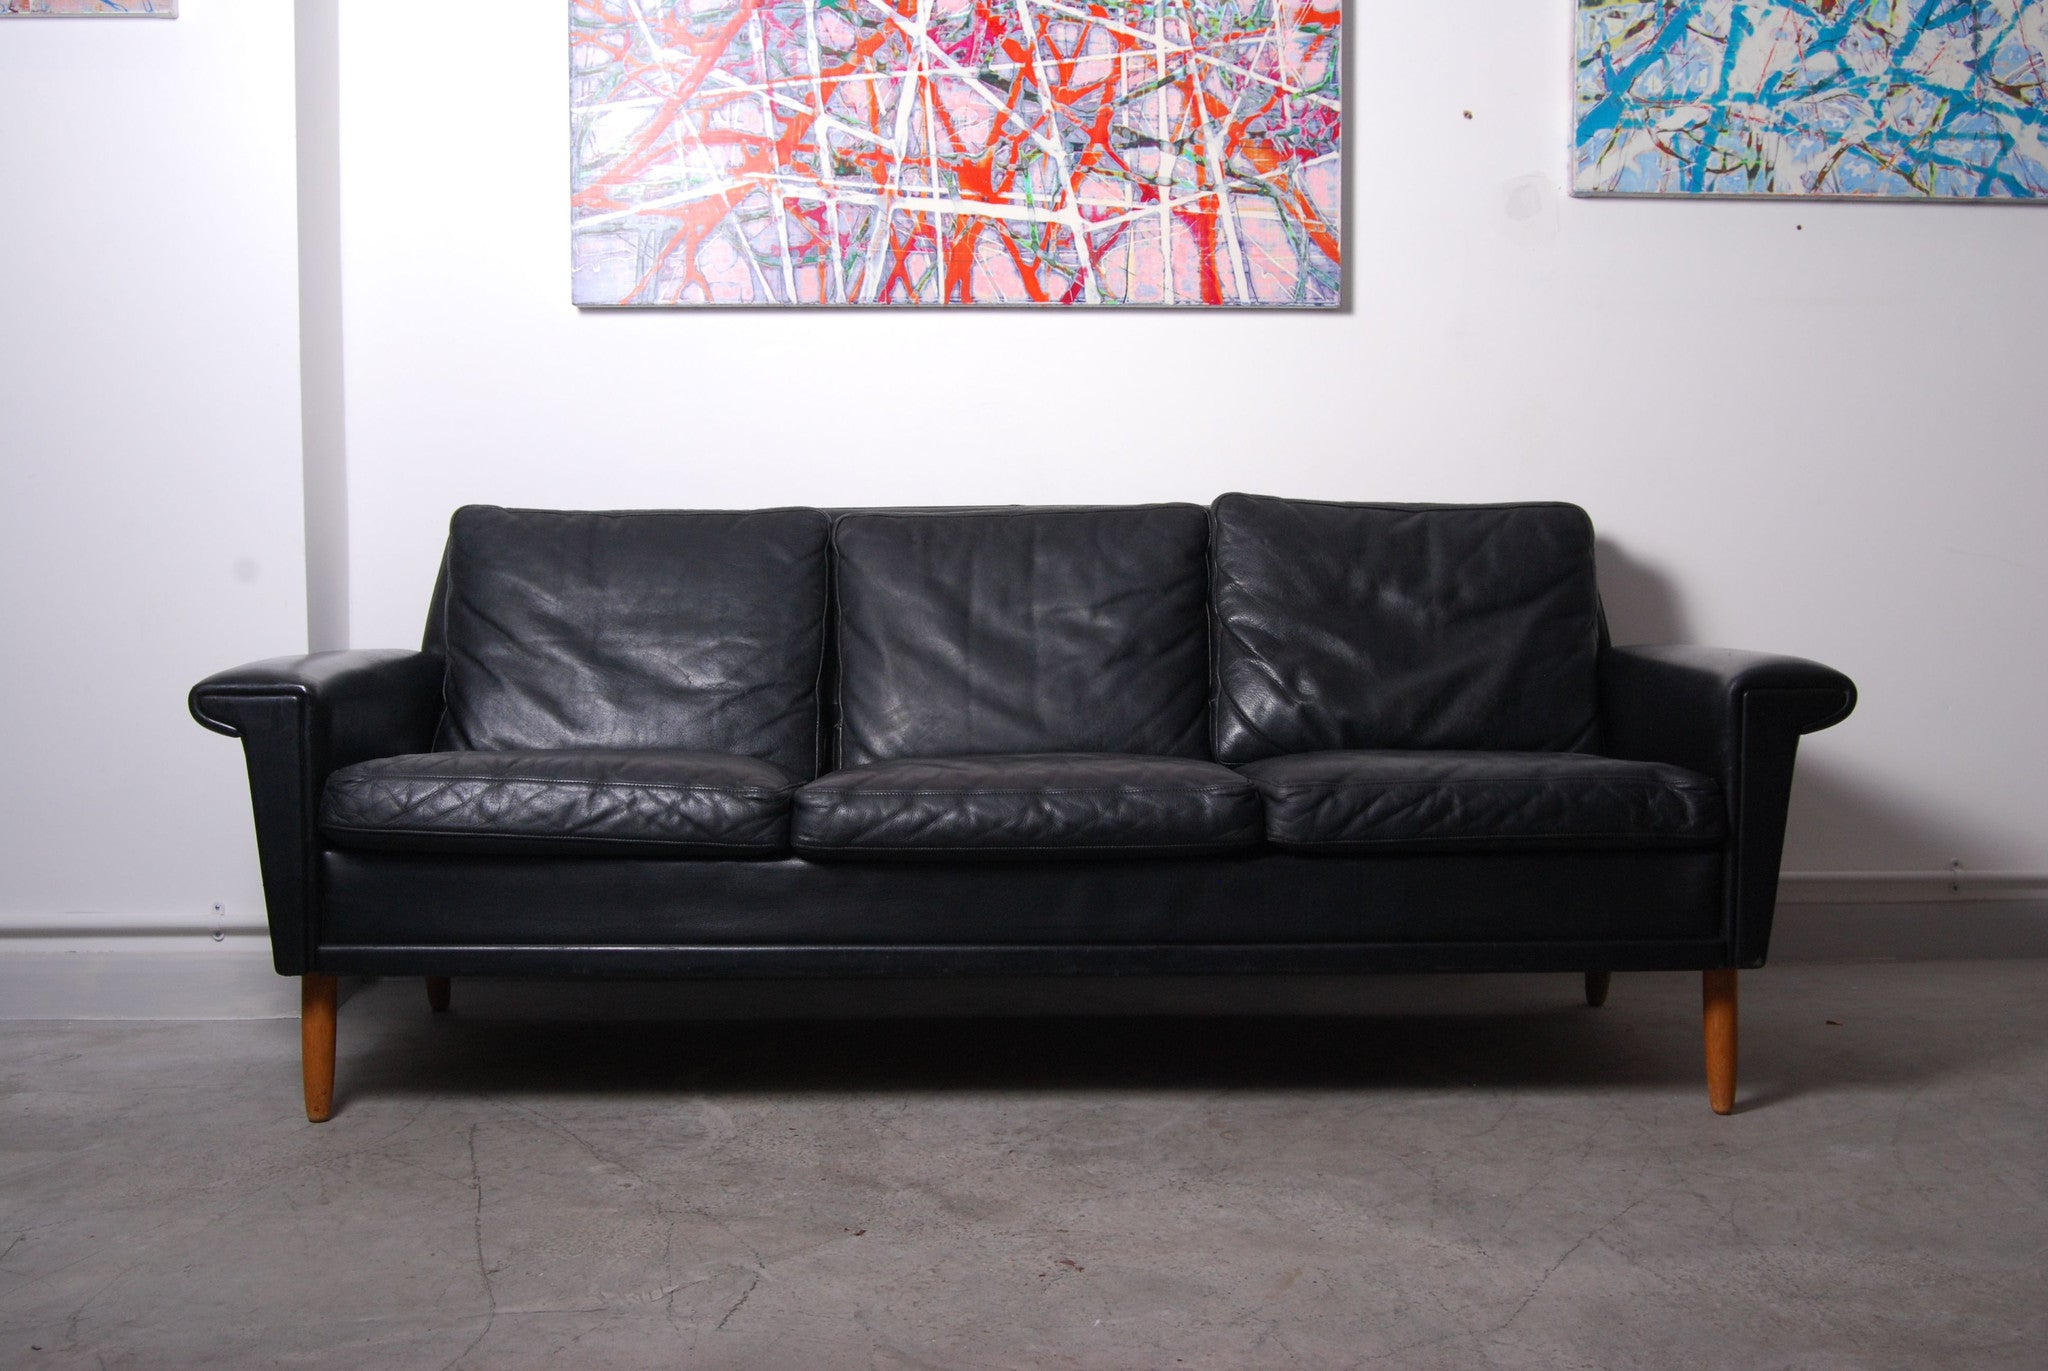 Chase & Sorensen 1960s leather three seater